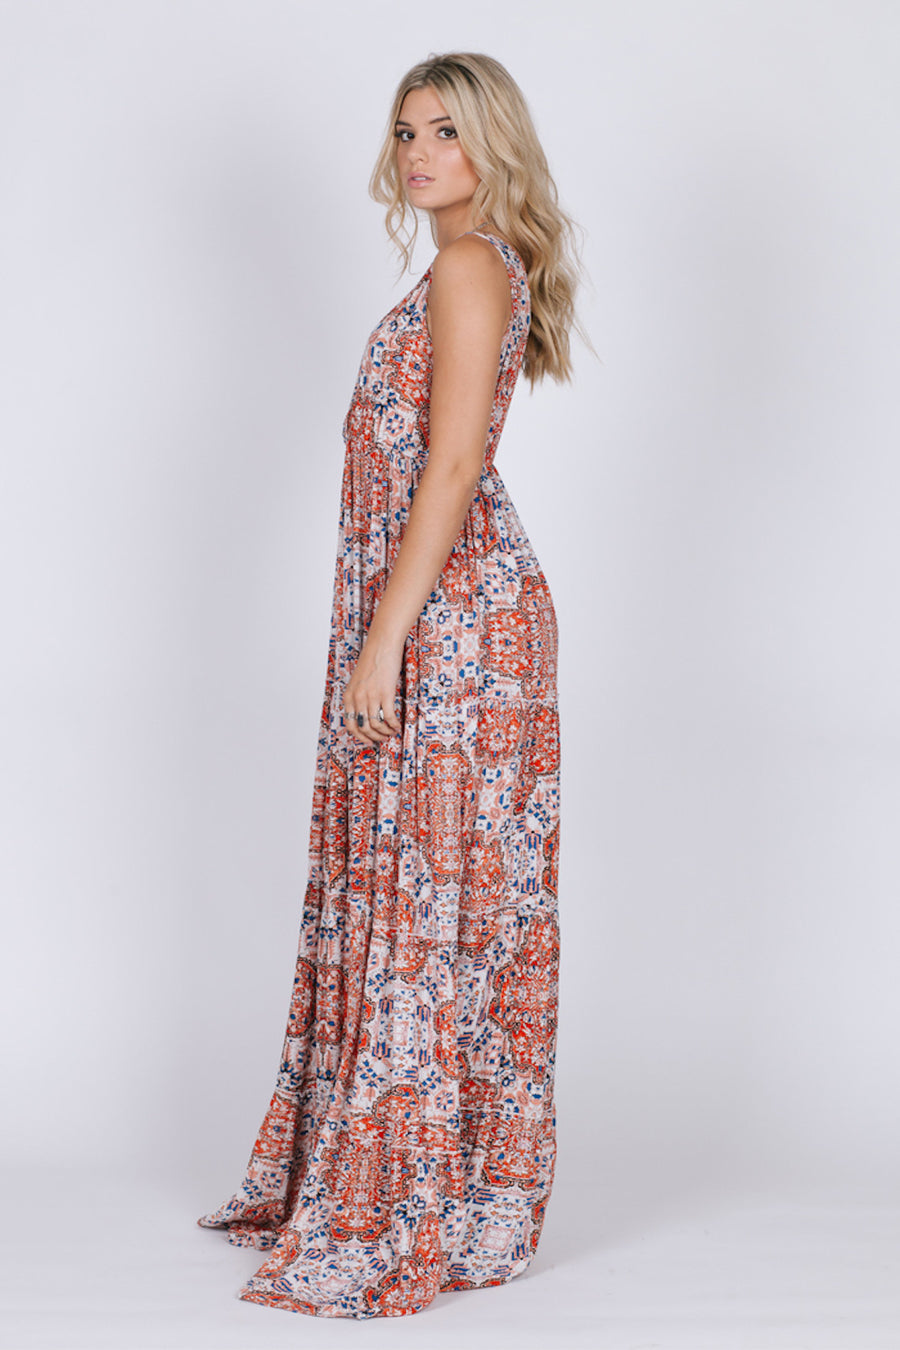 SUNSET GOLD SLEEVELESS MAXI DRESS